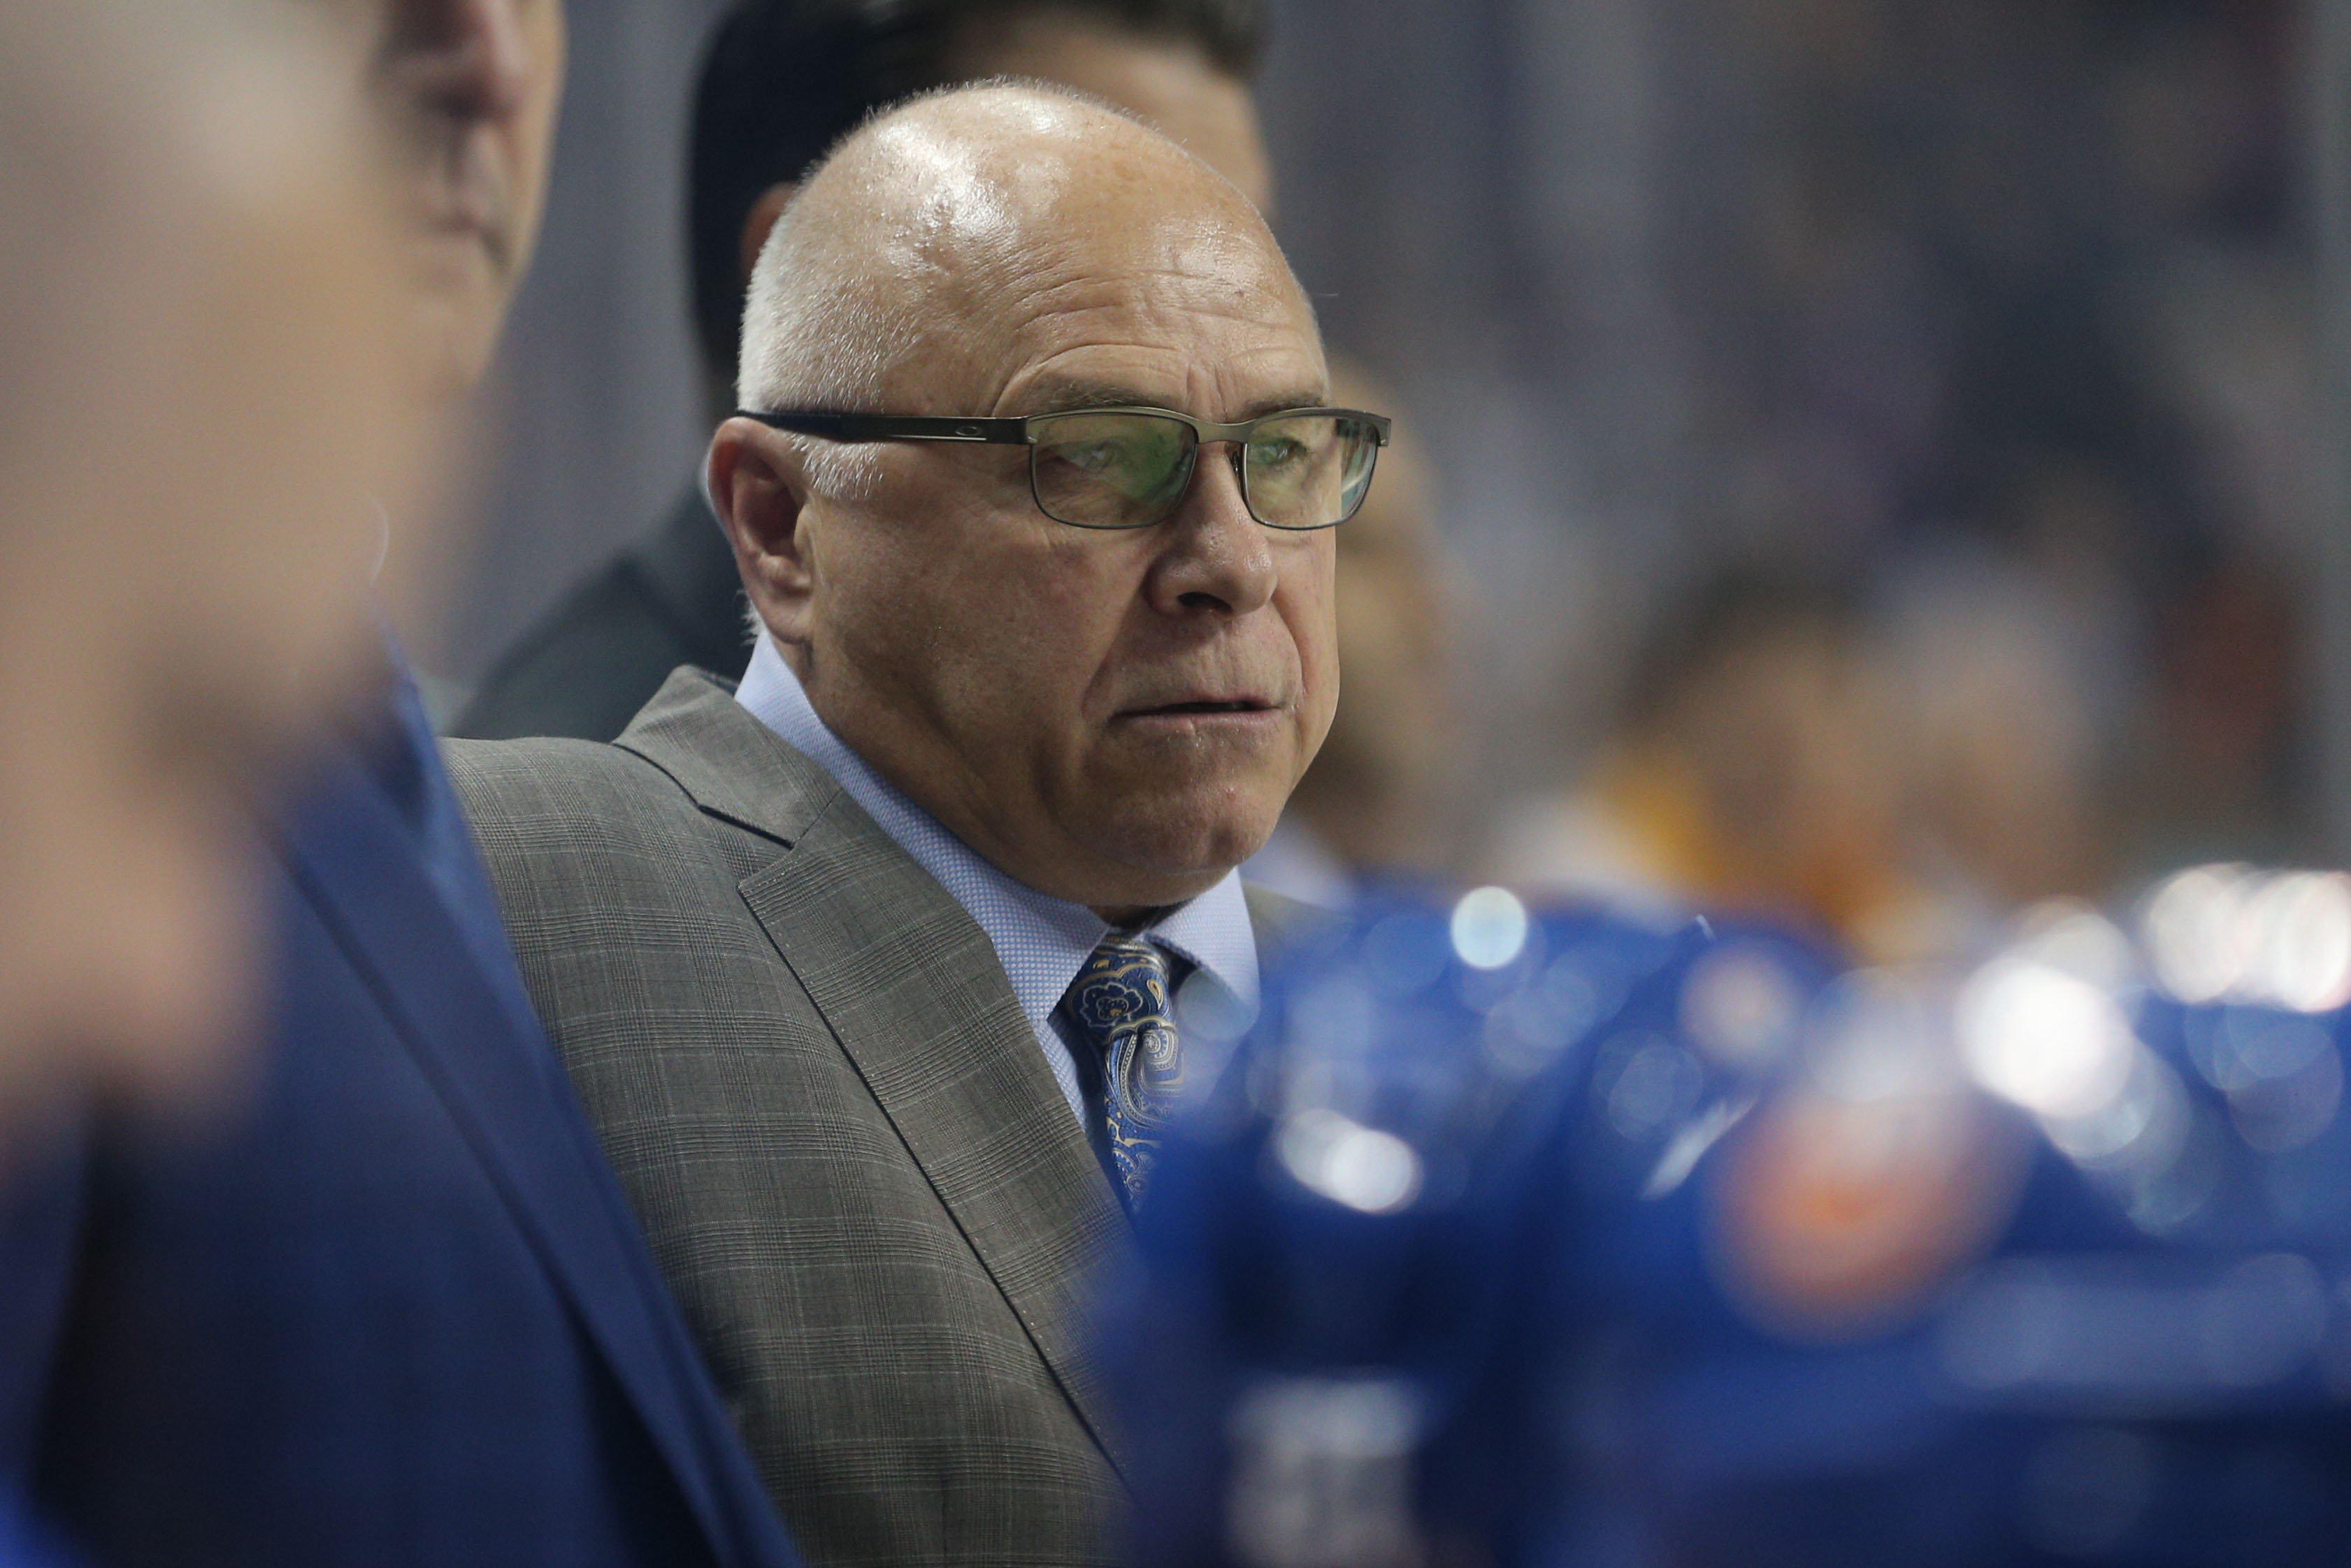 Oct 6, 2018; Brooklyn, NY, USA; New York Islanders head coach Barry Trotz coaches against the Nashville Predators during the first period at Barclays Center. Mandatory Credit: Brad Penner-USA TODAY Sports